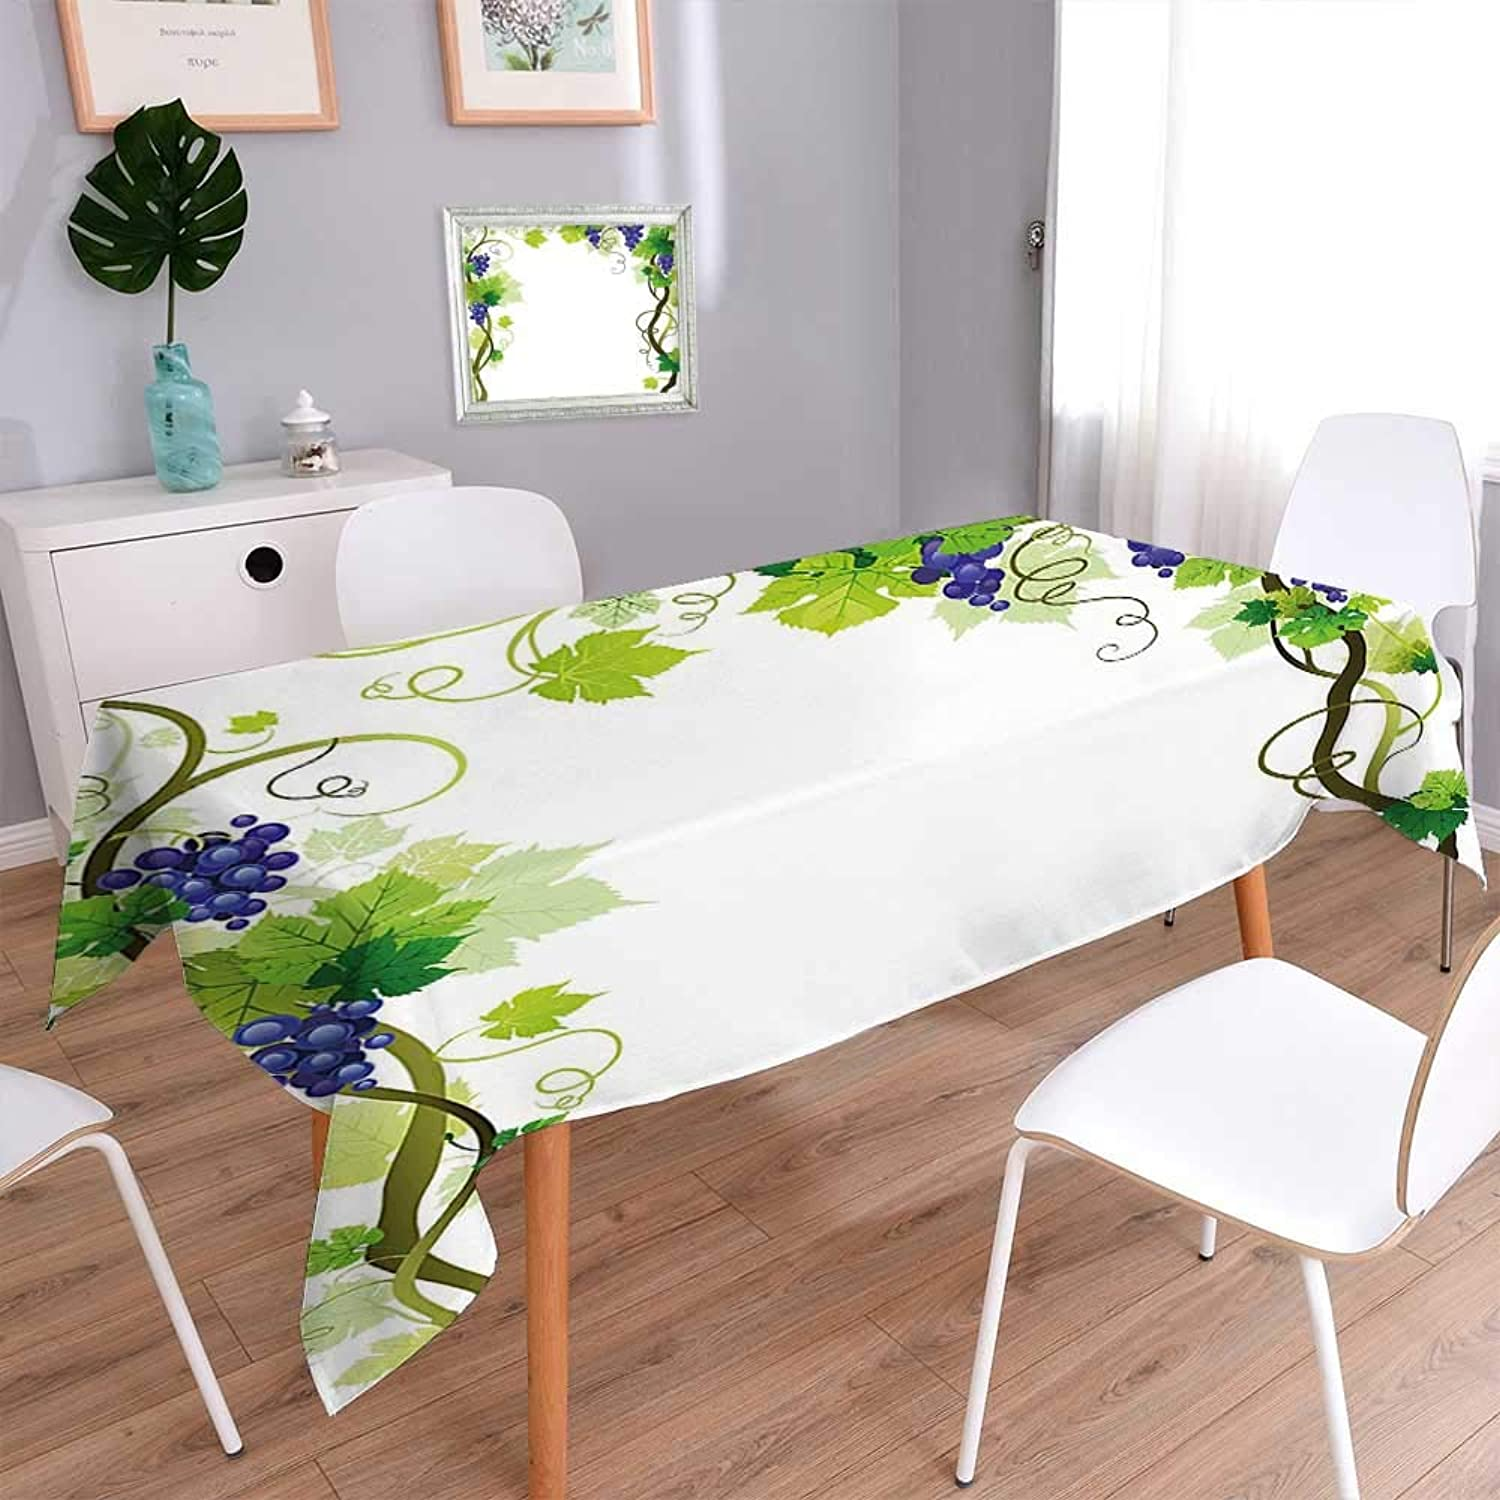 100% Polyester, EcoFriendly and Safe with Swirled Leaf Fresh Fruit Garden Harvest Season Wine Growth Green Multi colors & Sizes 60 x140